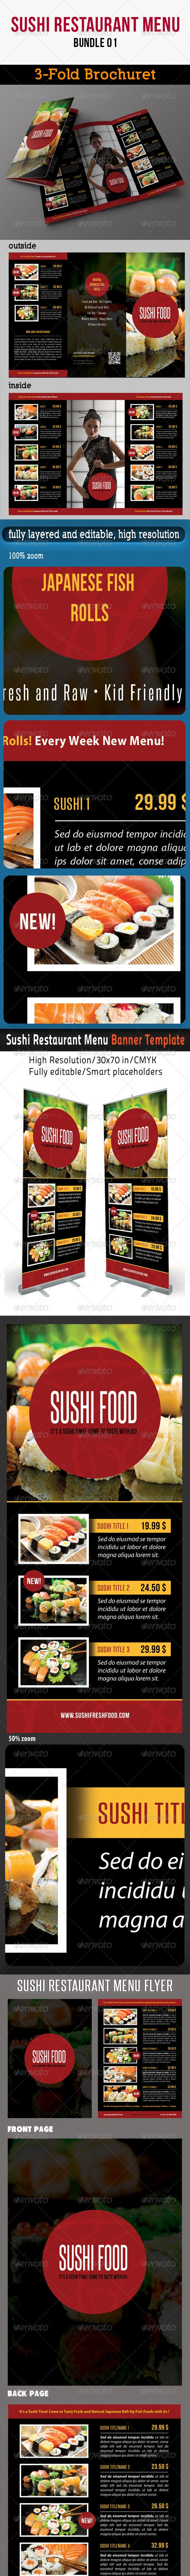 Sushi Restaurant Menu Bundle 02 - Stationery Print Templates